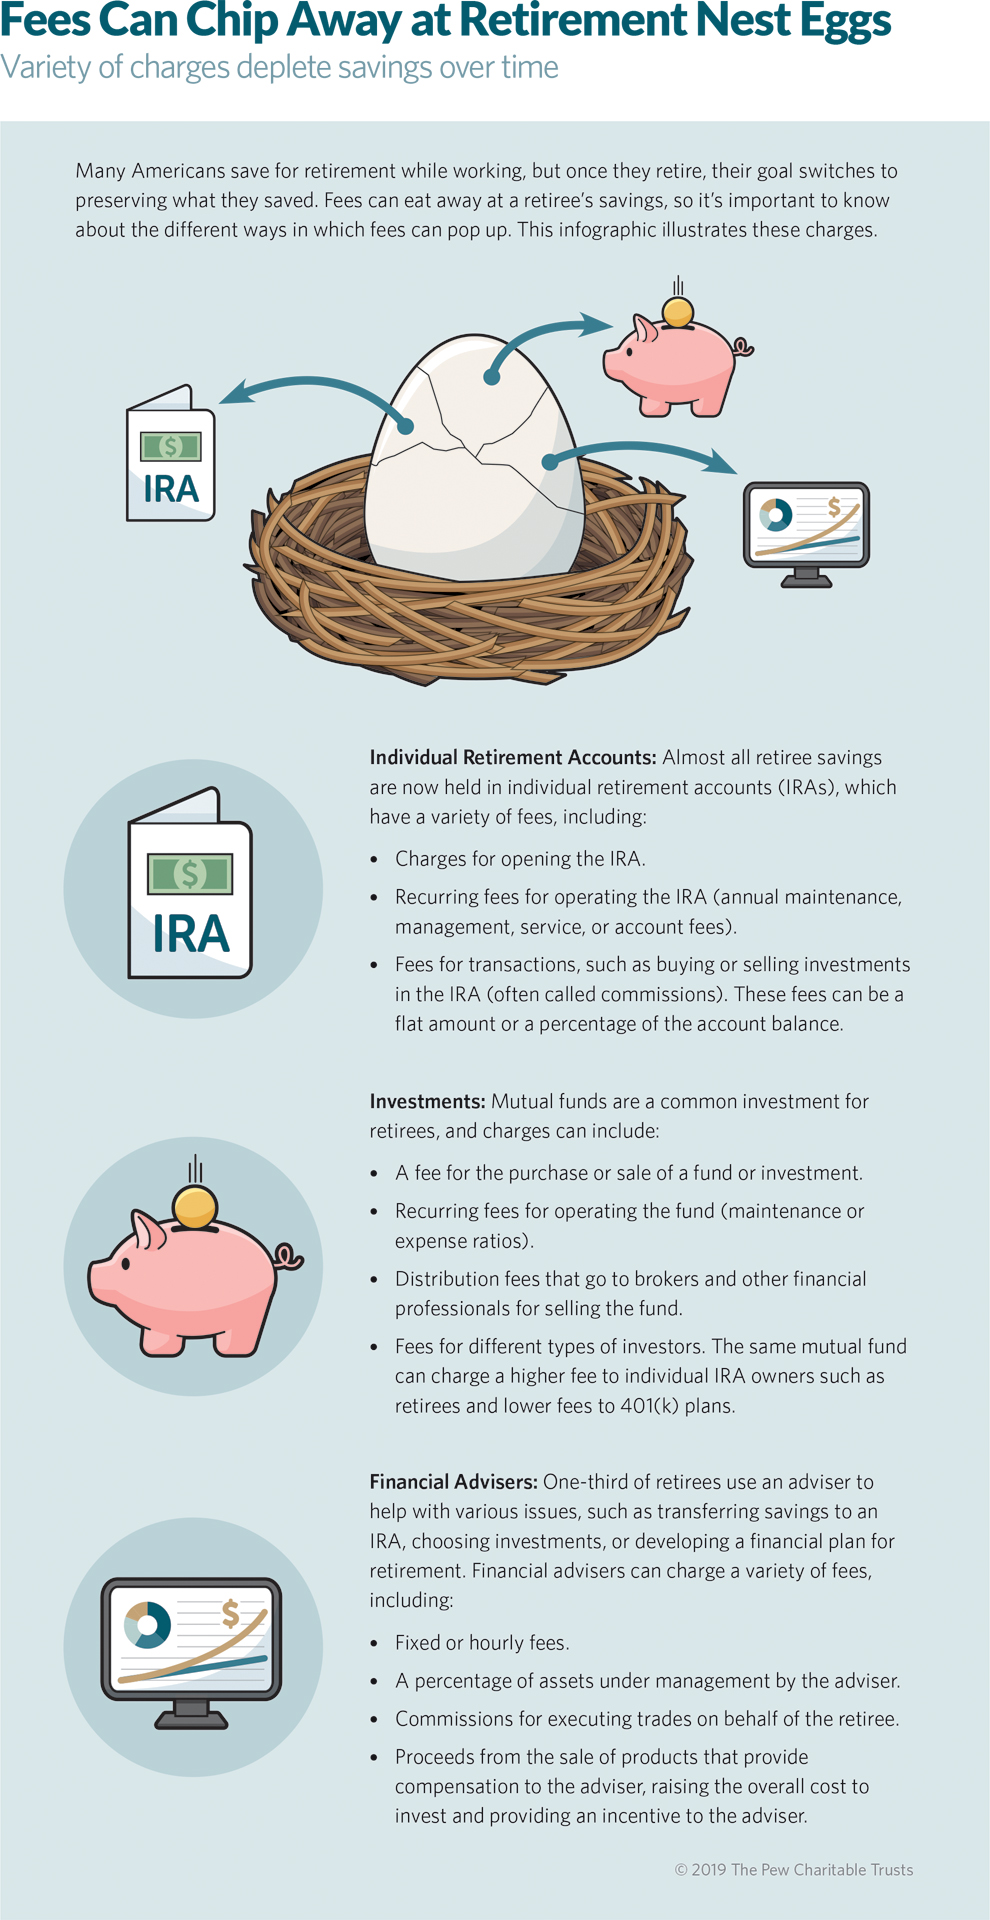 Many Americans save for retirement while working, but once they retire, their goal switches to preserving what they saved. Fees can eat away at a retiree's savings, so it's important to know about the different ways in which fees can pop up. This infographic illustrates these charges.